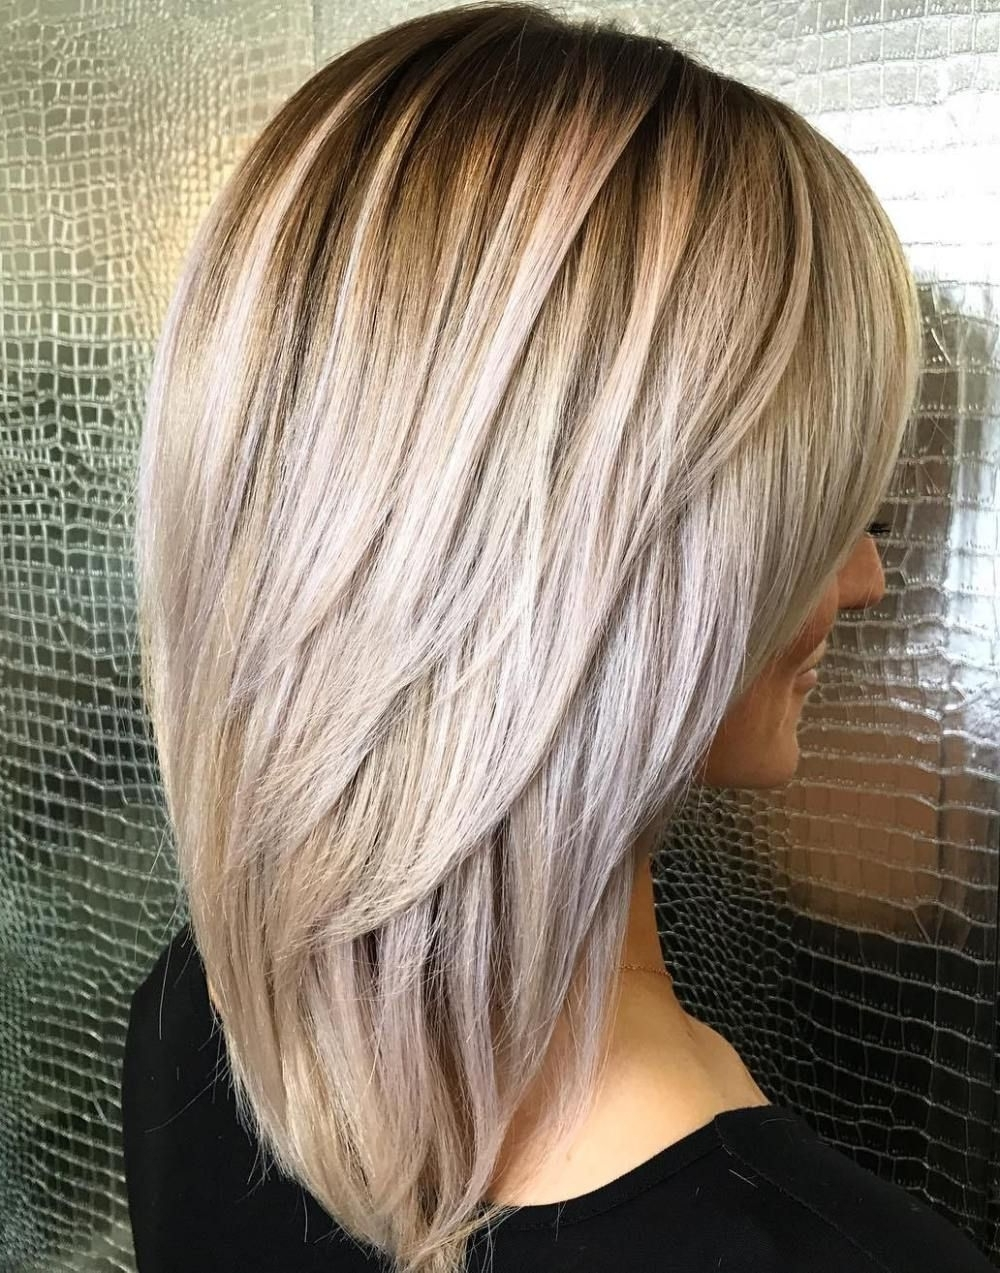 Elongated Layered Cut With Voluminous Crown | Beauty Hairstyles Inside Latest Pastel And Ash Pixie Haircuts With Fused Layers (View 4 of 15)